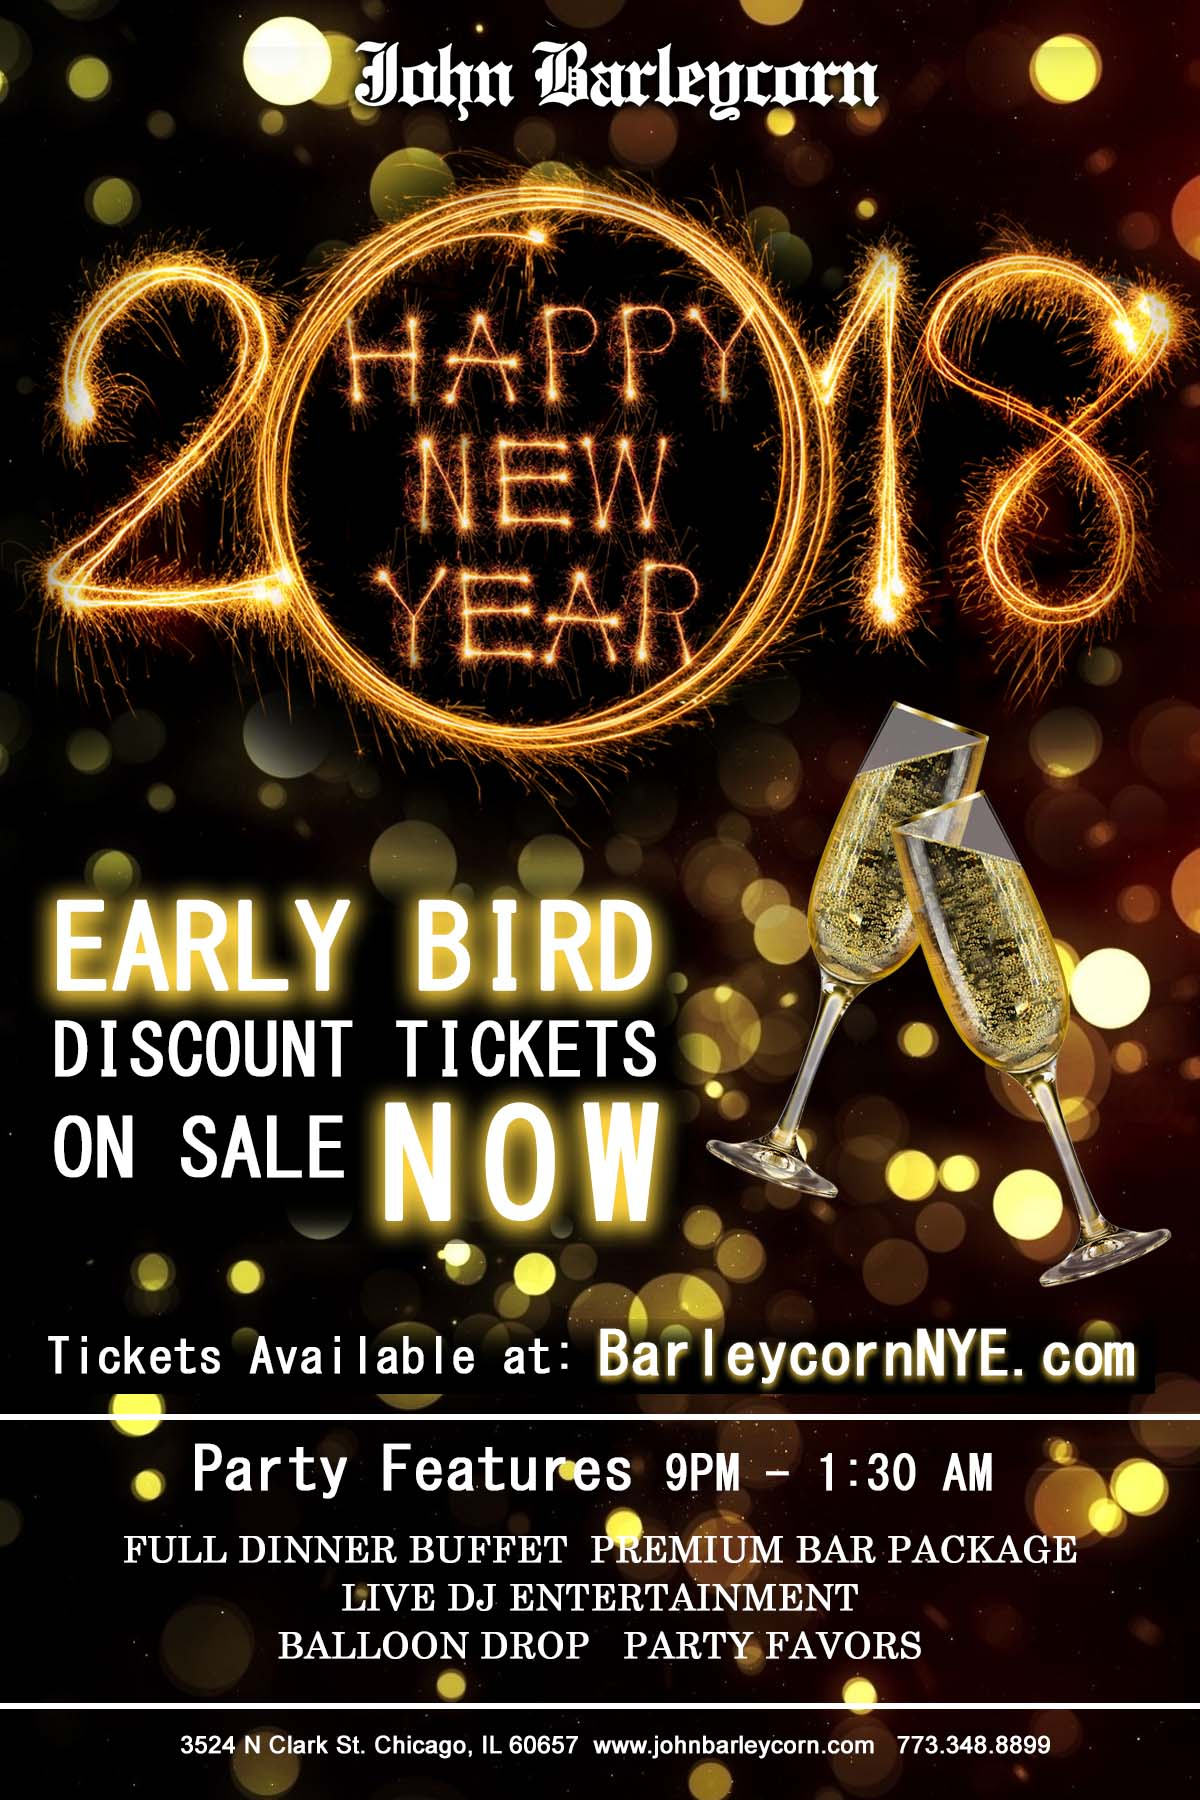 John Barleycorn New Year's Eve Party - Tickets Include a Full Dinner Buffet, Premium Bar Package from 9pm-1:30am, Live DJ Entertainment, Balloon Drop and More!